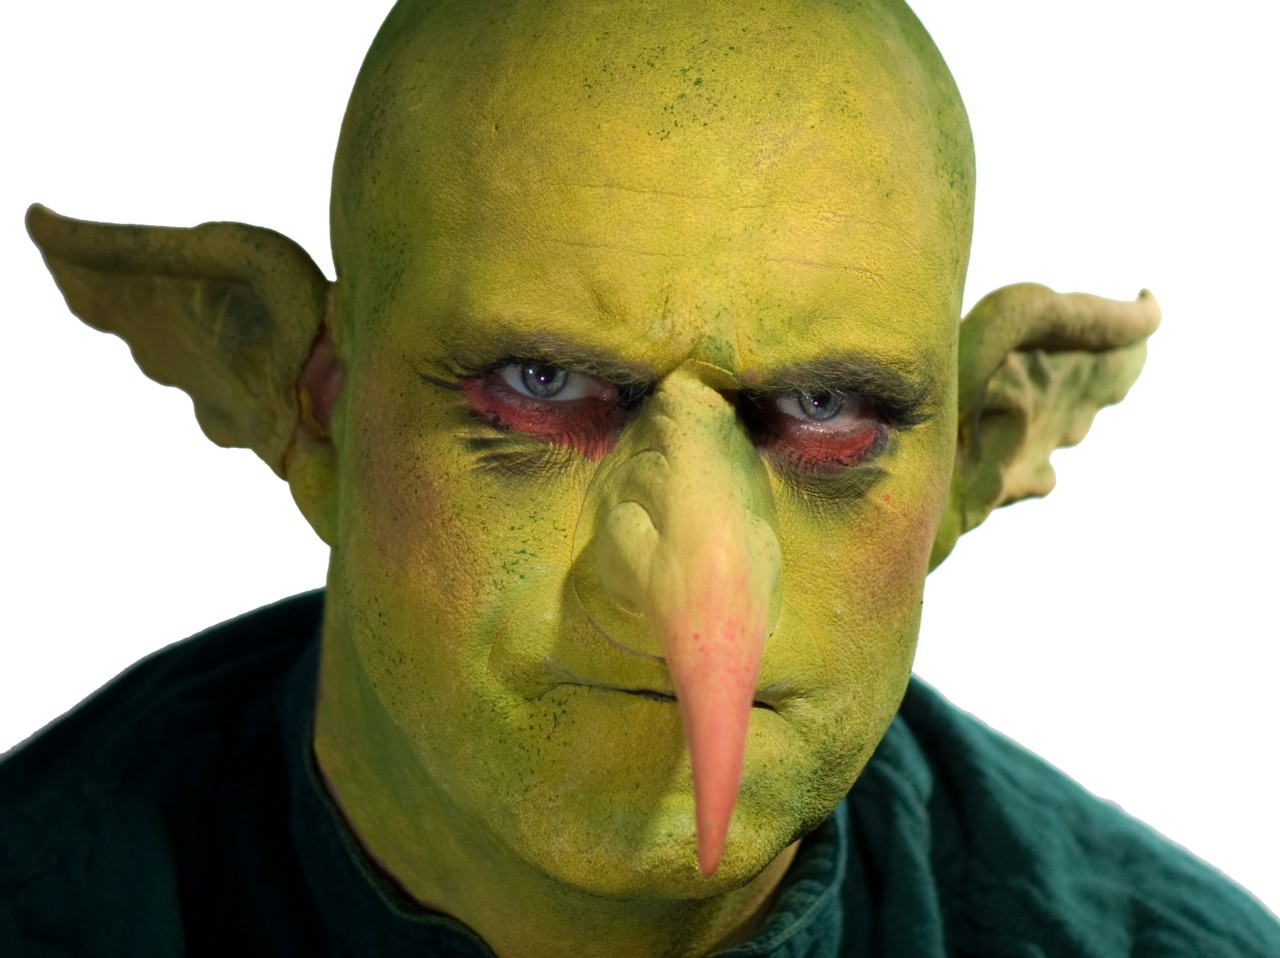 goblin make-up